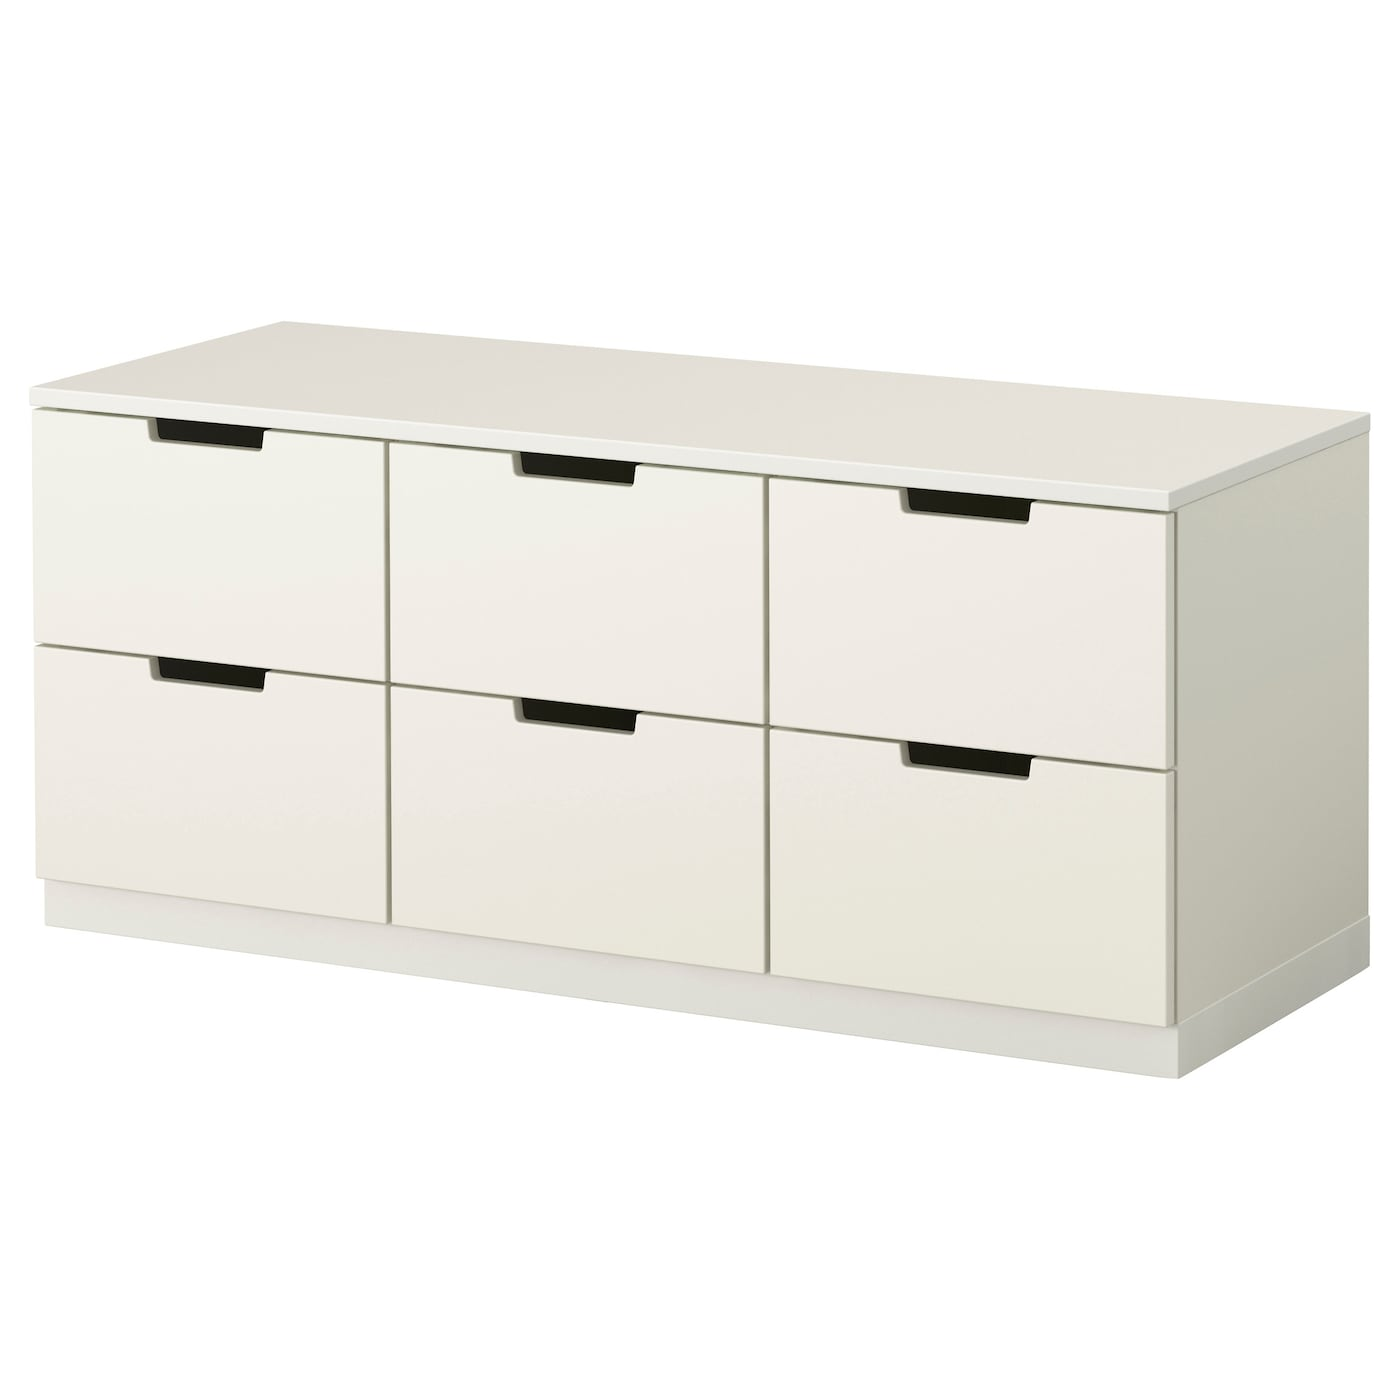 nordli chest of 6 drawers white 120x52 cm ikea. Black Bedroom Furniture Sets. Home Design Ideas